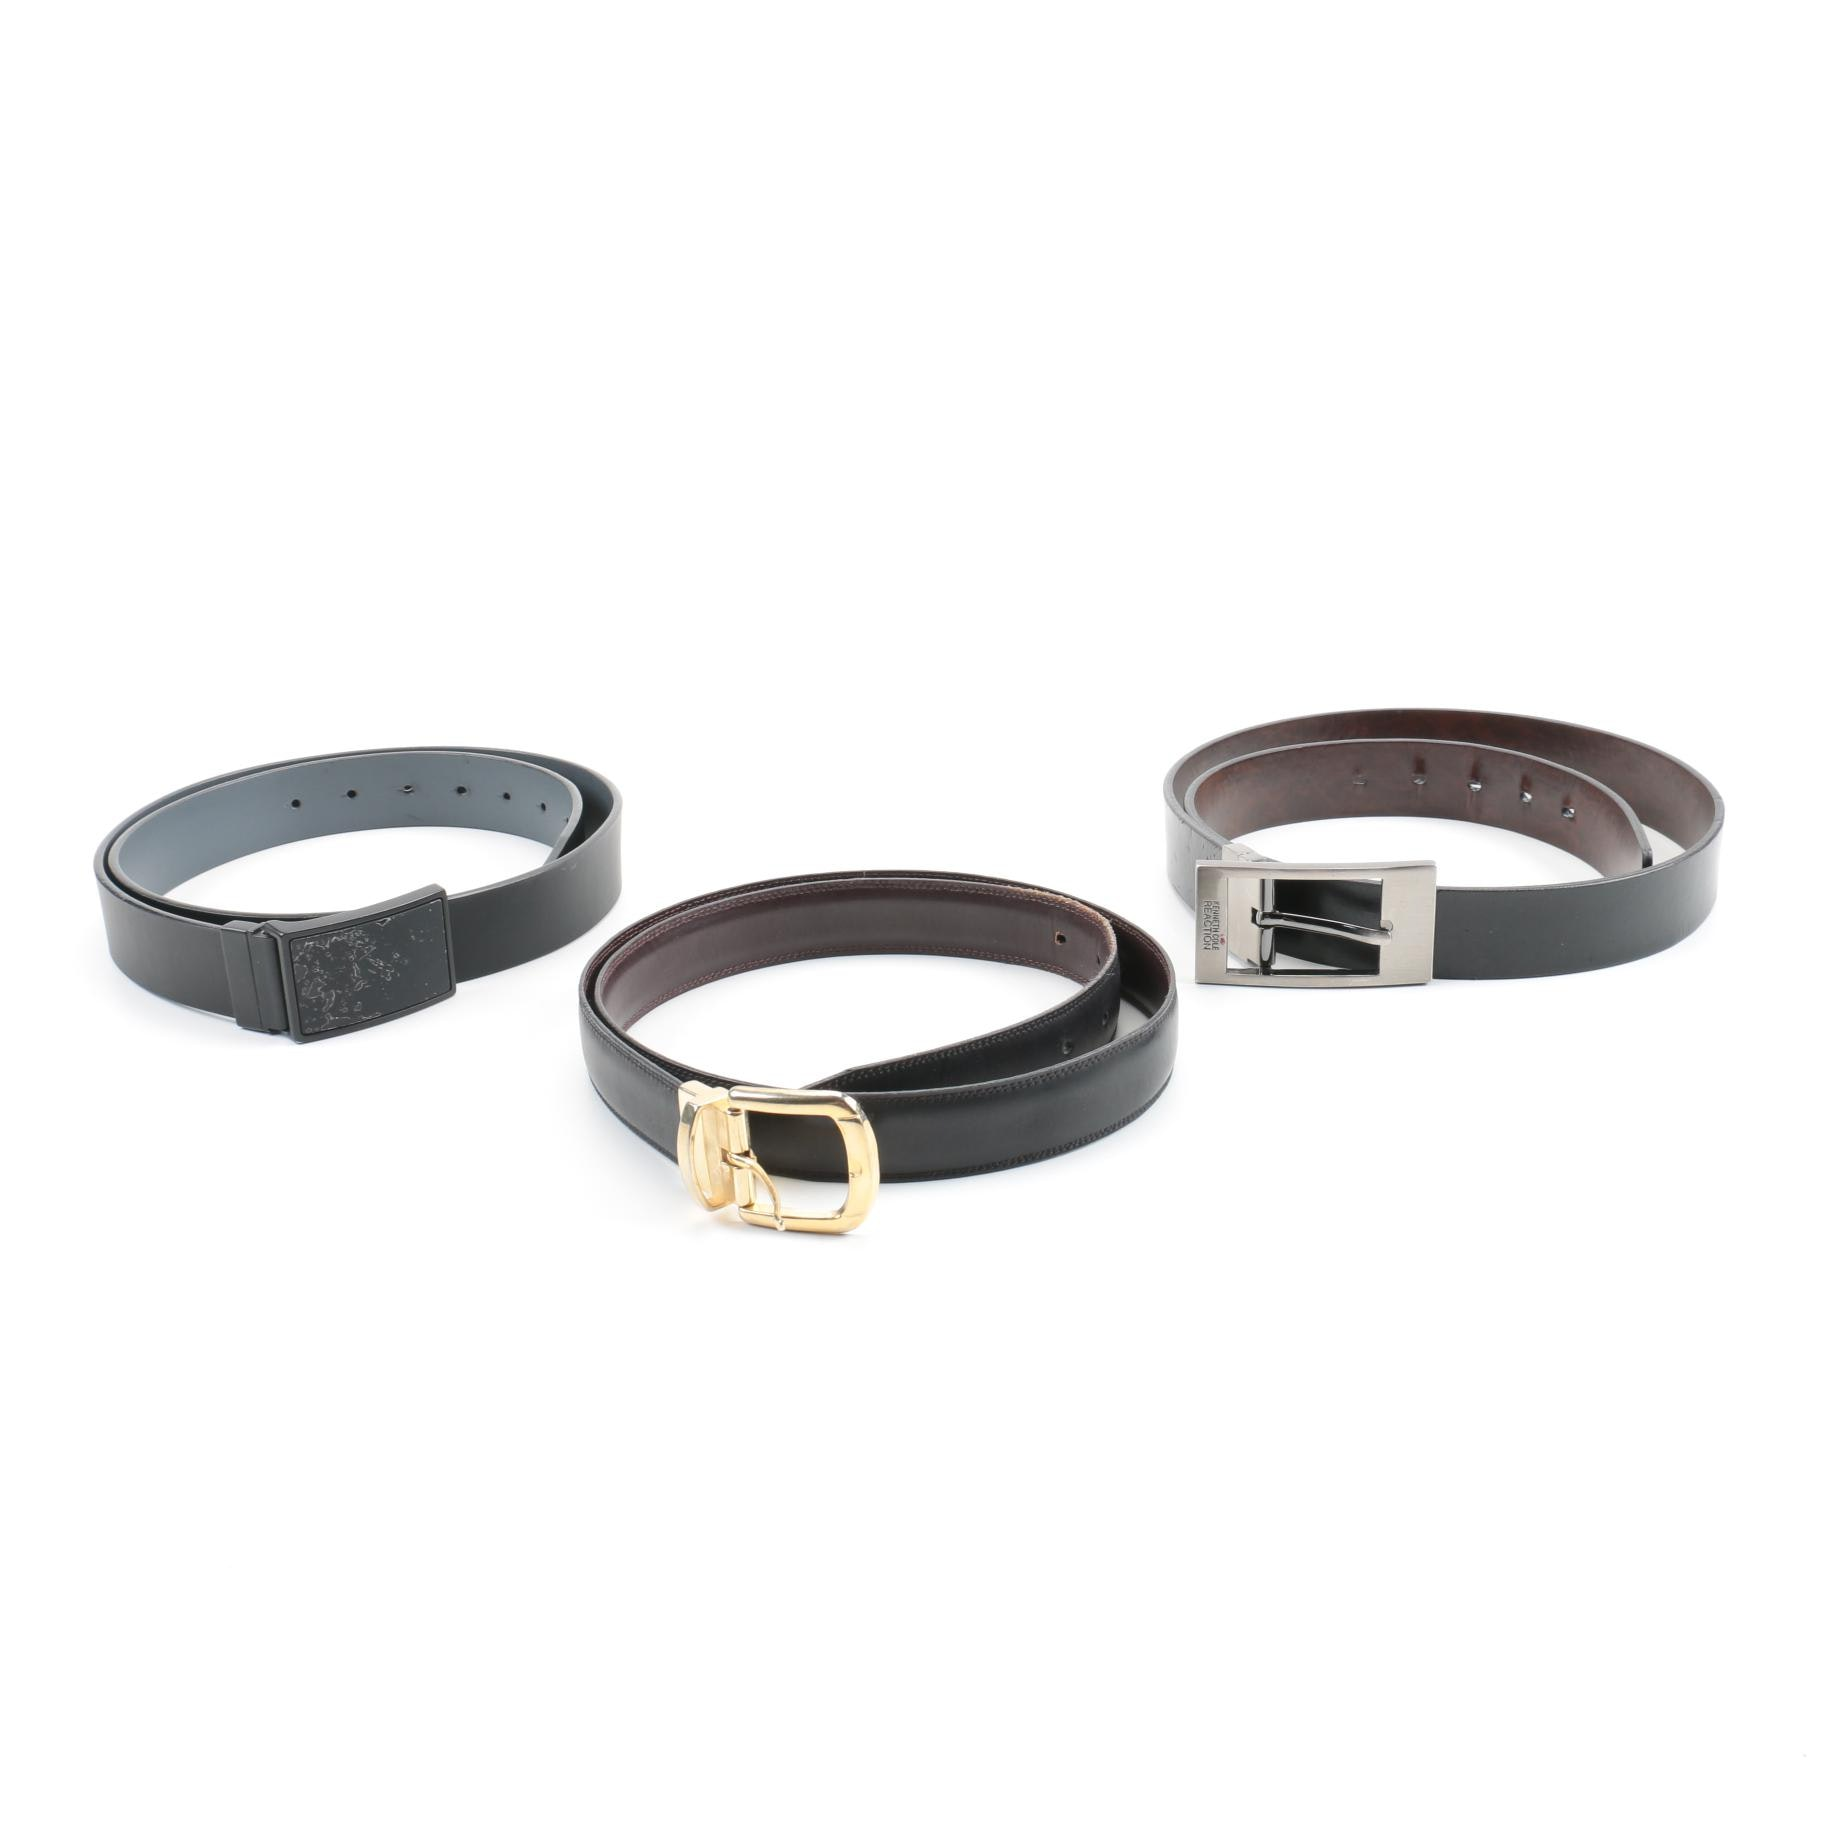 Leather Belts featuring Kenneth Cole and Perry Ellis